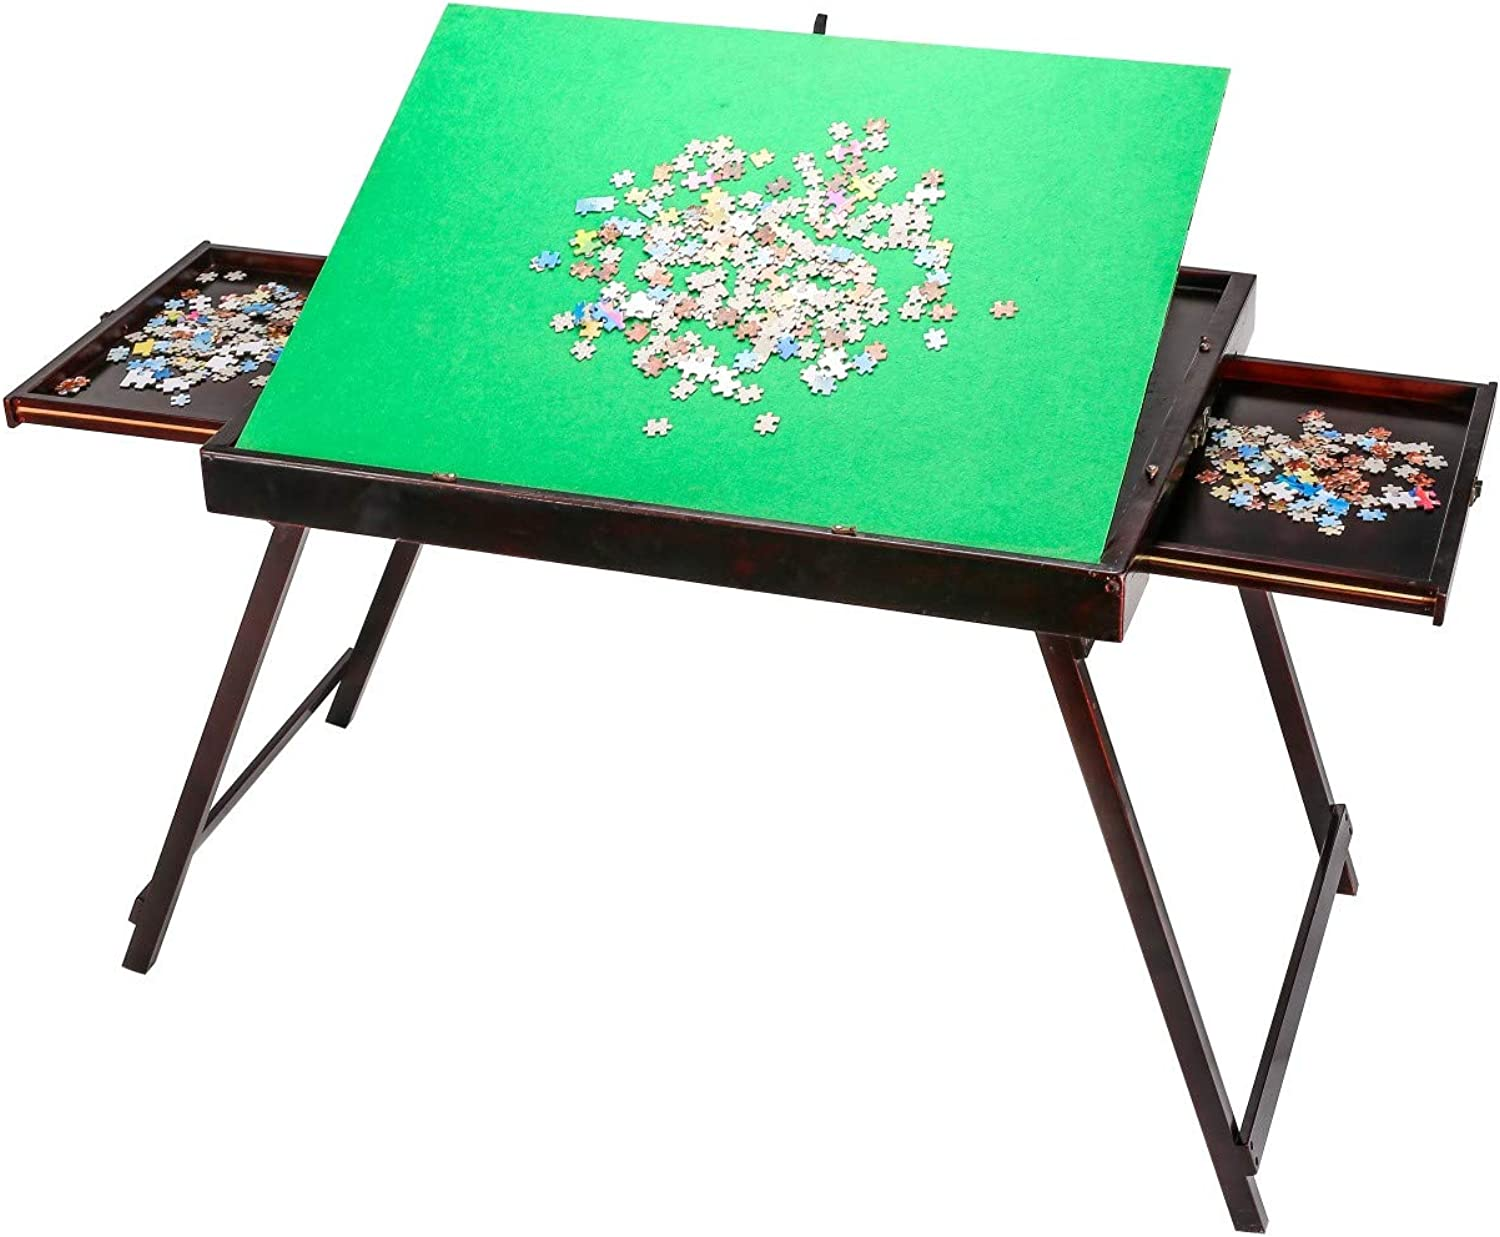 DYC Jigsaw puzzle table, Standing, Foldable, Tilting design, Suitable up to 1500pcs puzzles (With drawer)